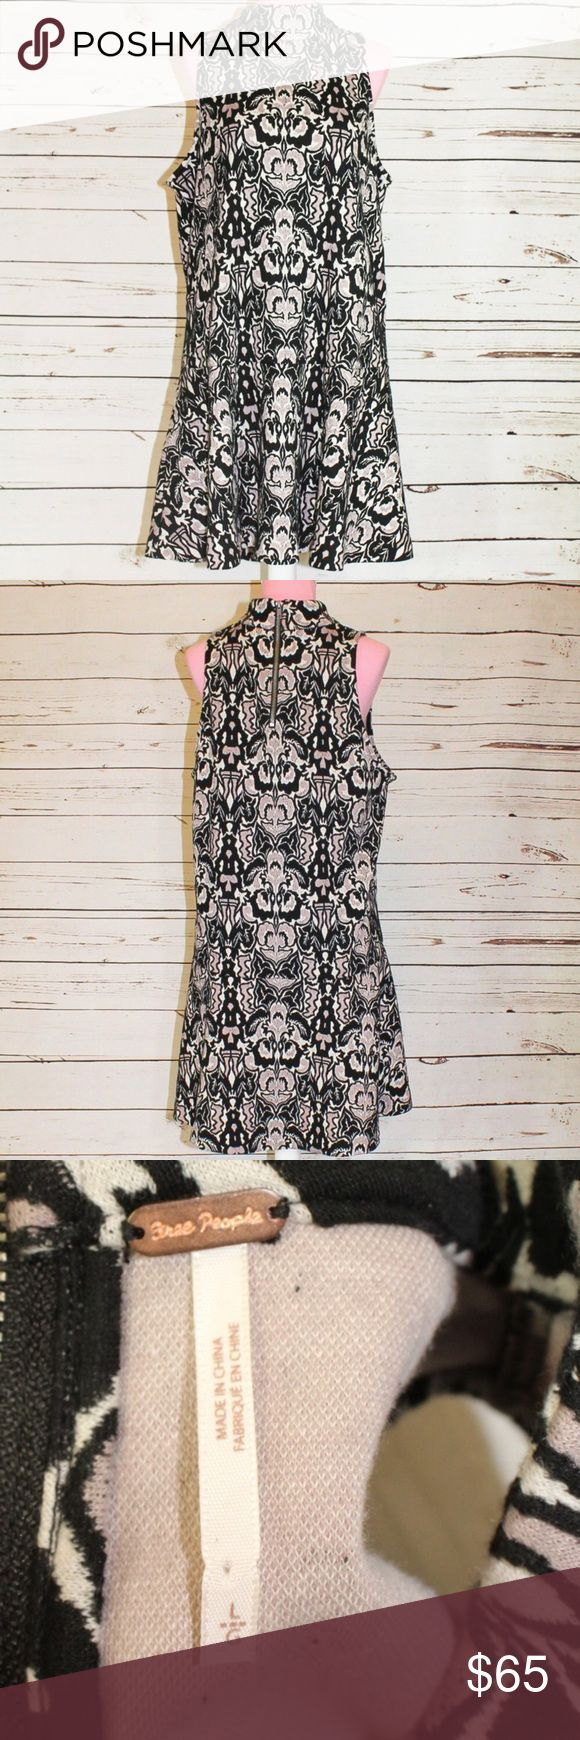 Free People Amelia Mini Dress Halter Drophem This is a patterned dress from Free People. Size large. Minor pilling on inside. Outside is in excellent used condition. Halter neck. Choker neck style. The pattern has Floral elements and is reminiscent of a Rorschach pattern, Amelia mini dress in Black Jacquard. Free People Dresses